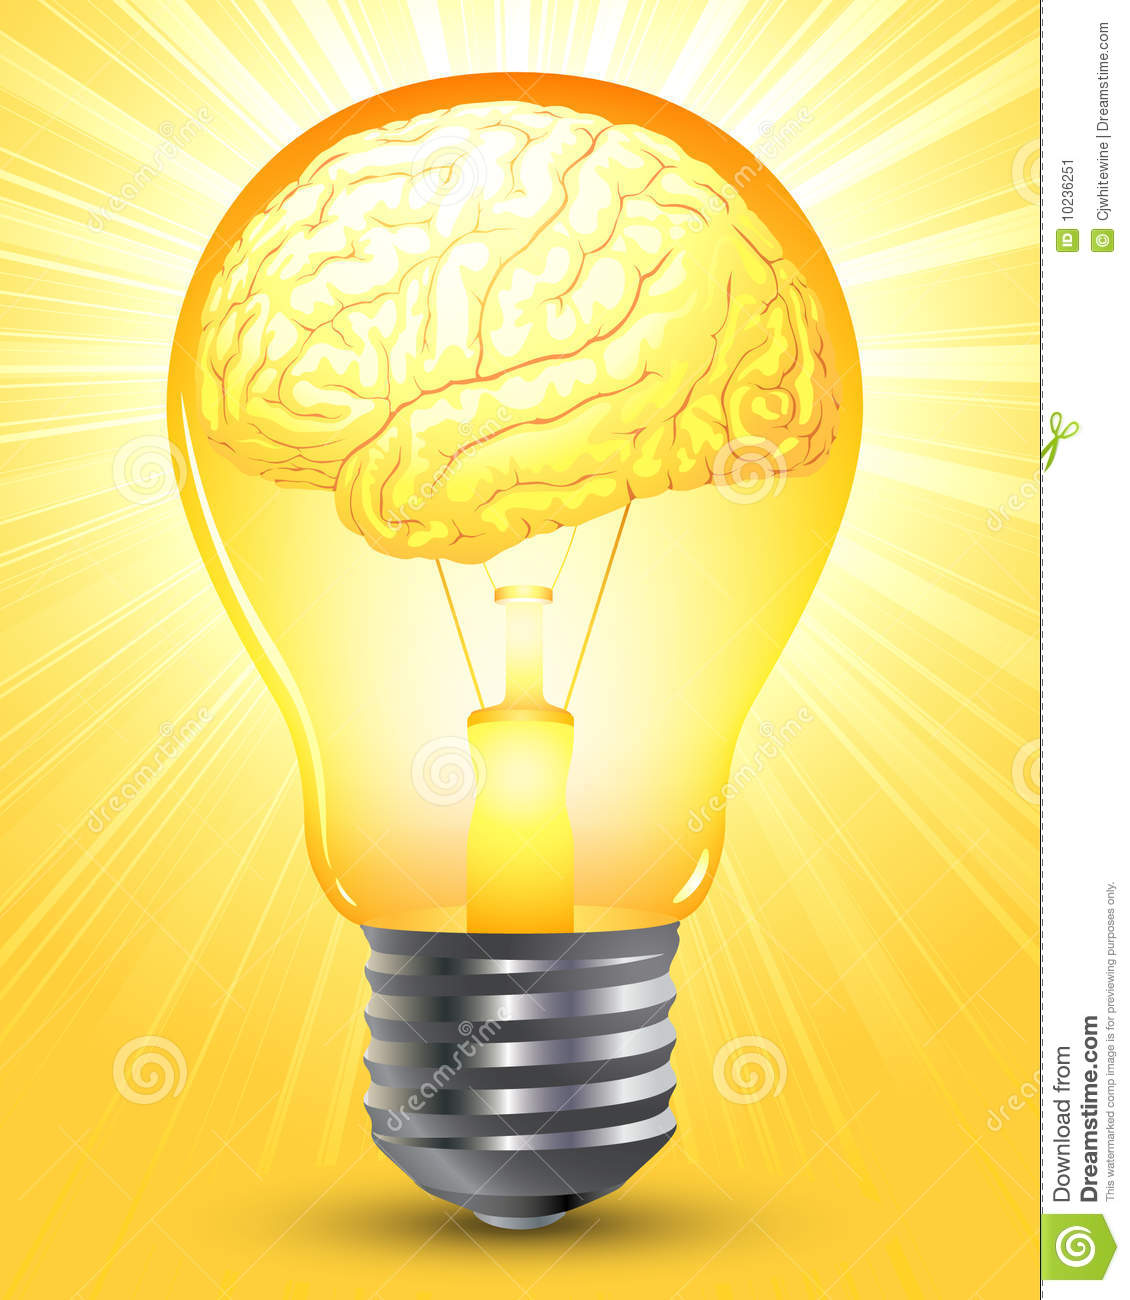 Smart Brain Stock Image - Image: 10236251